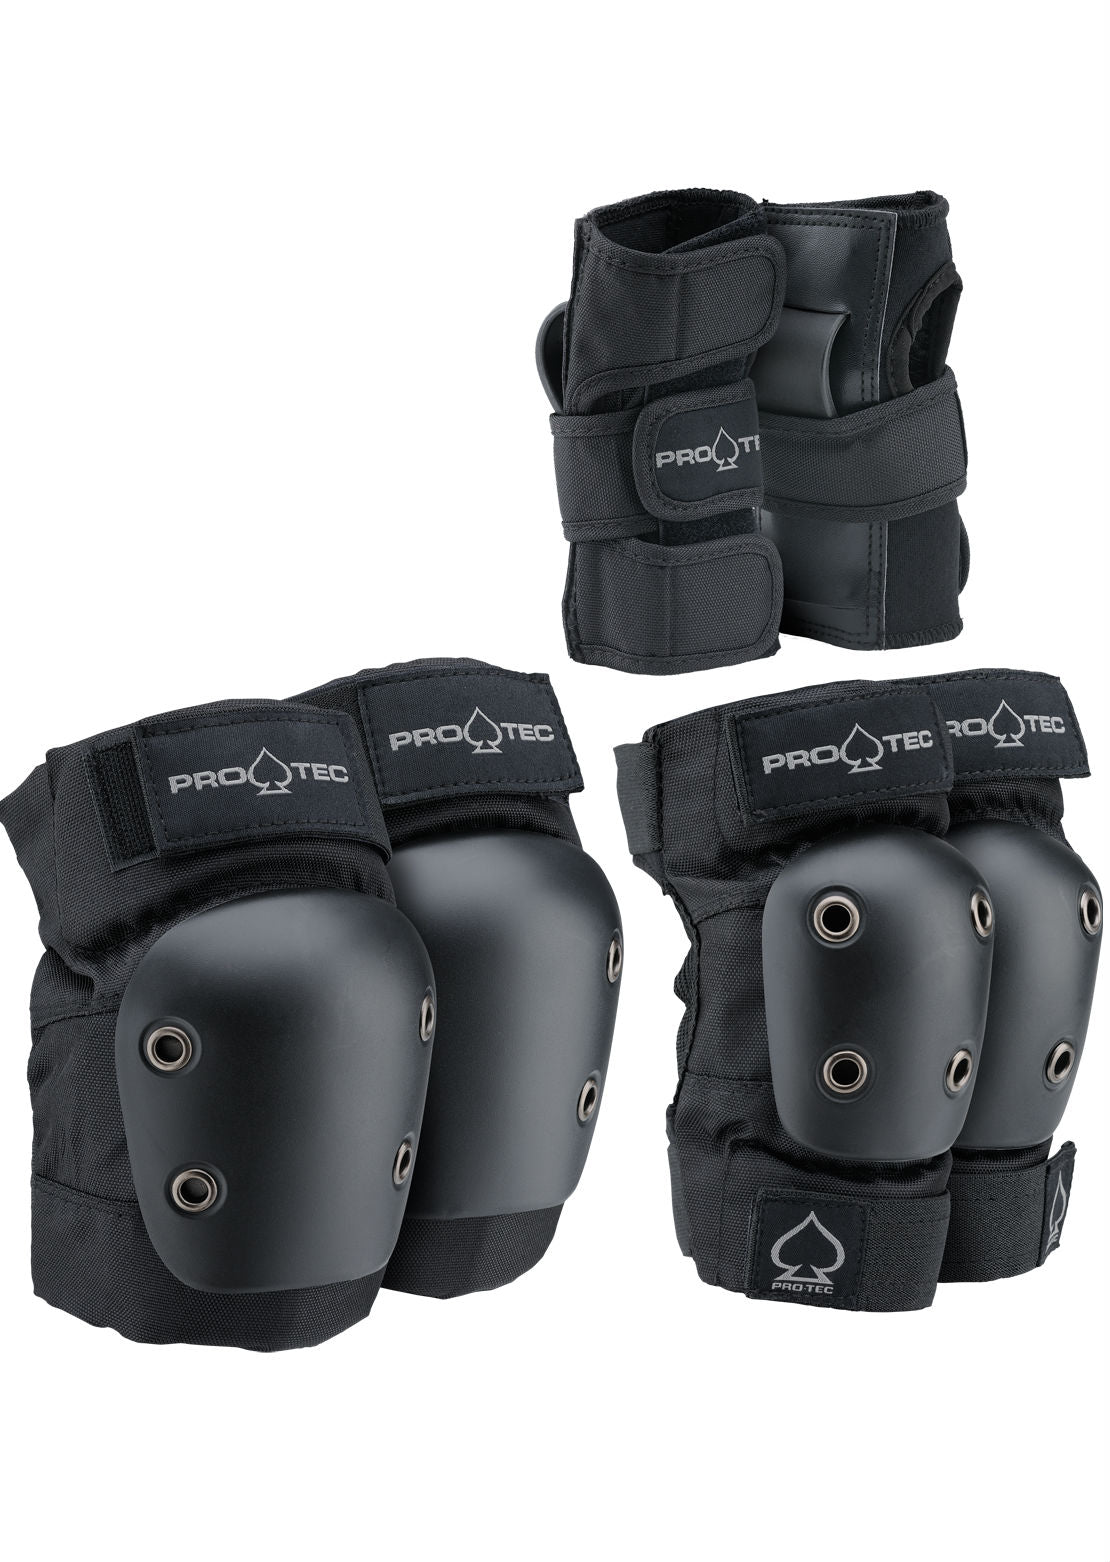 Pro-Tec Junior 3 Pack Pads Skateboard Protection